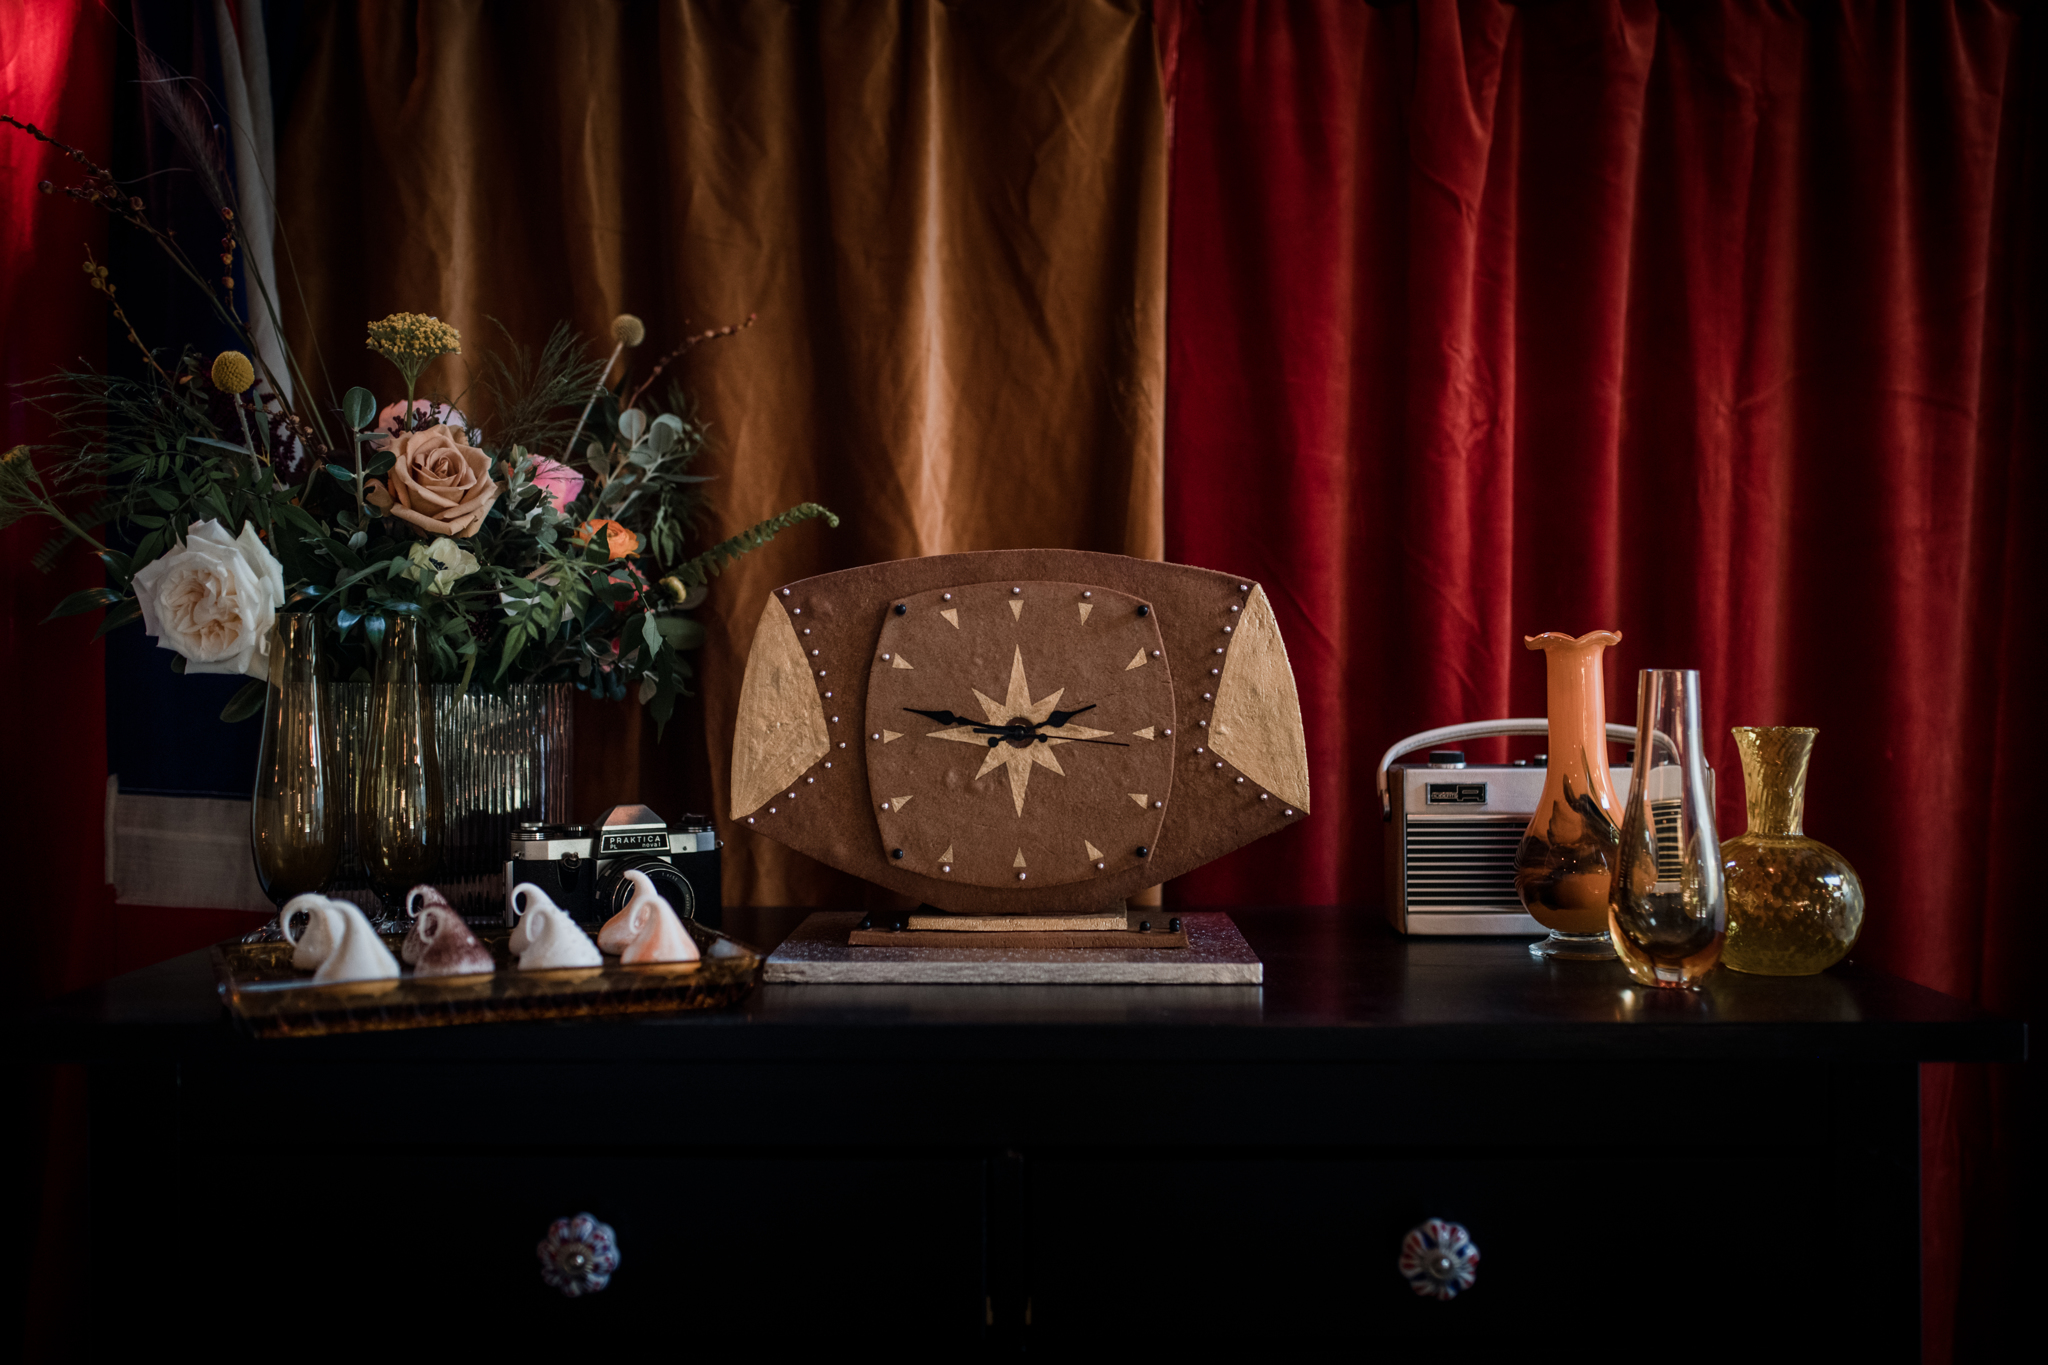 GINGERBREAD MANTEL CLOCK  Created as the dessert table centrepiece for a styled mid-century/70s themed photoshoot. (Photo credit:  Laura Martha )